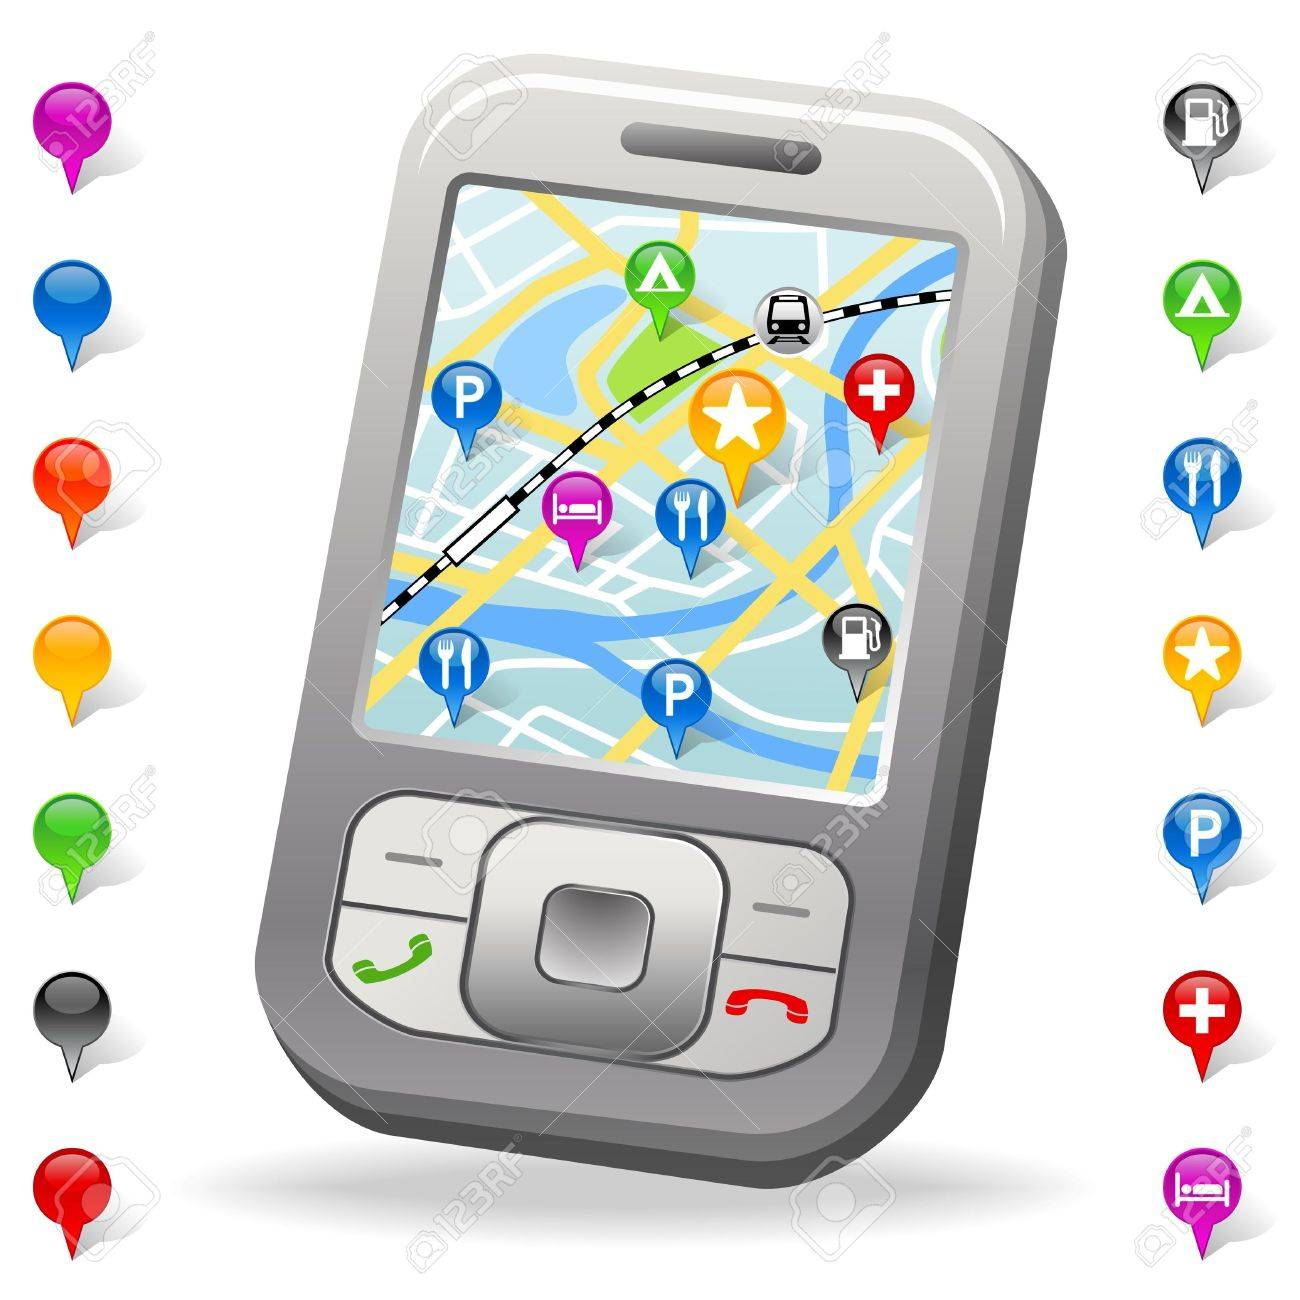 City Map on cell phone Stock Photo - 7858075